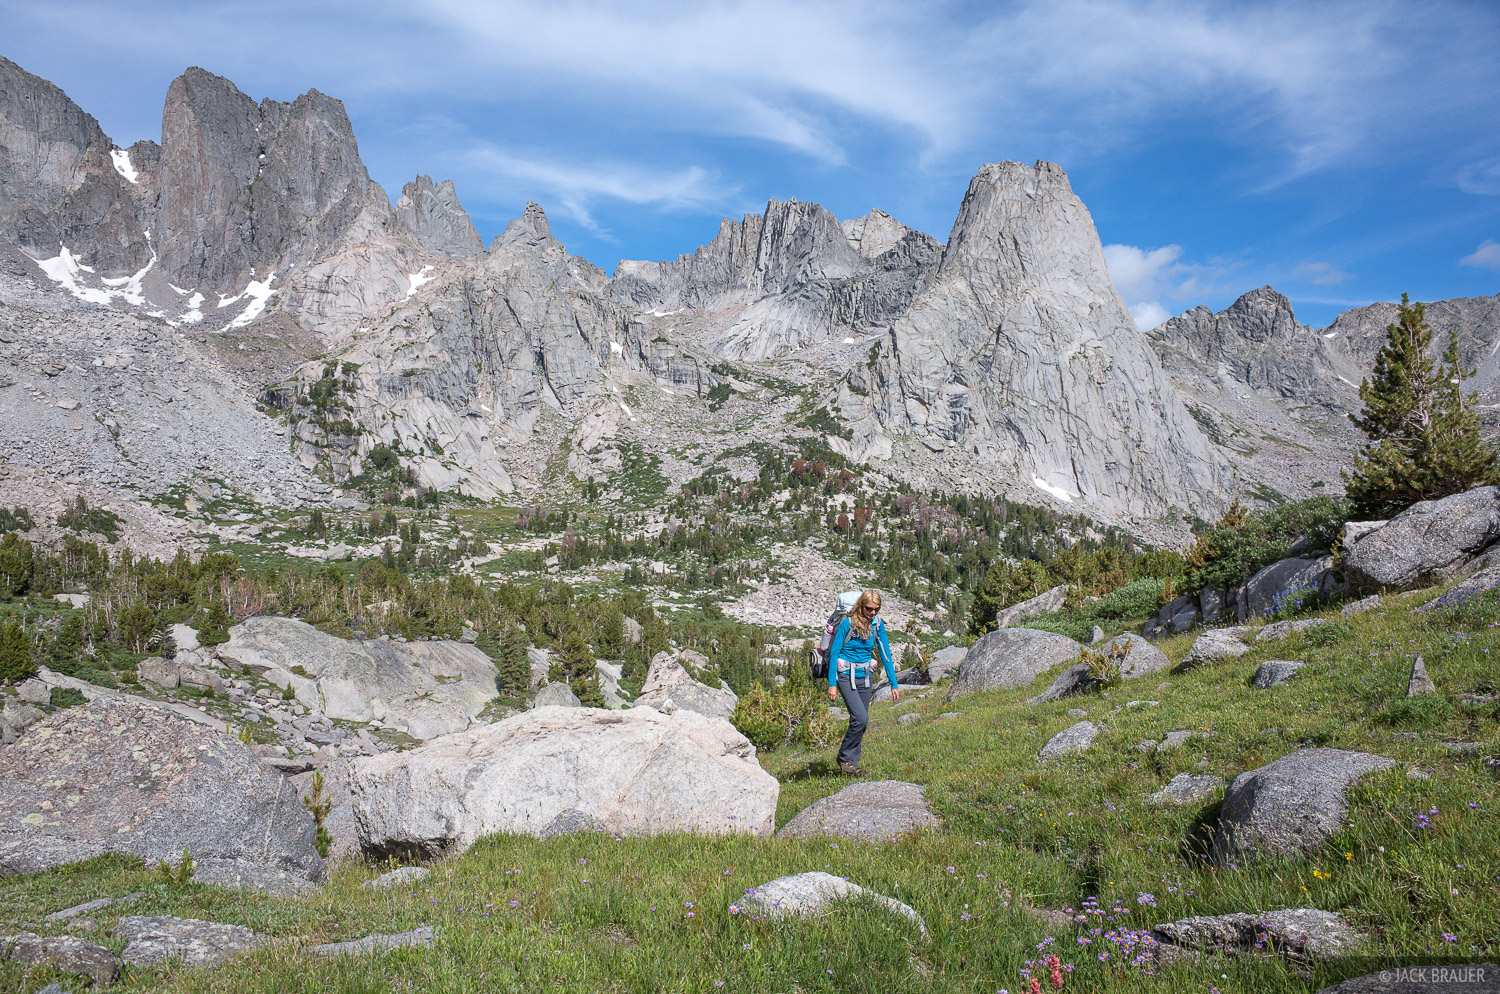 Cirque of the Towers,Pingora Peak,Wind River Range,Wyoming, hiking, photo